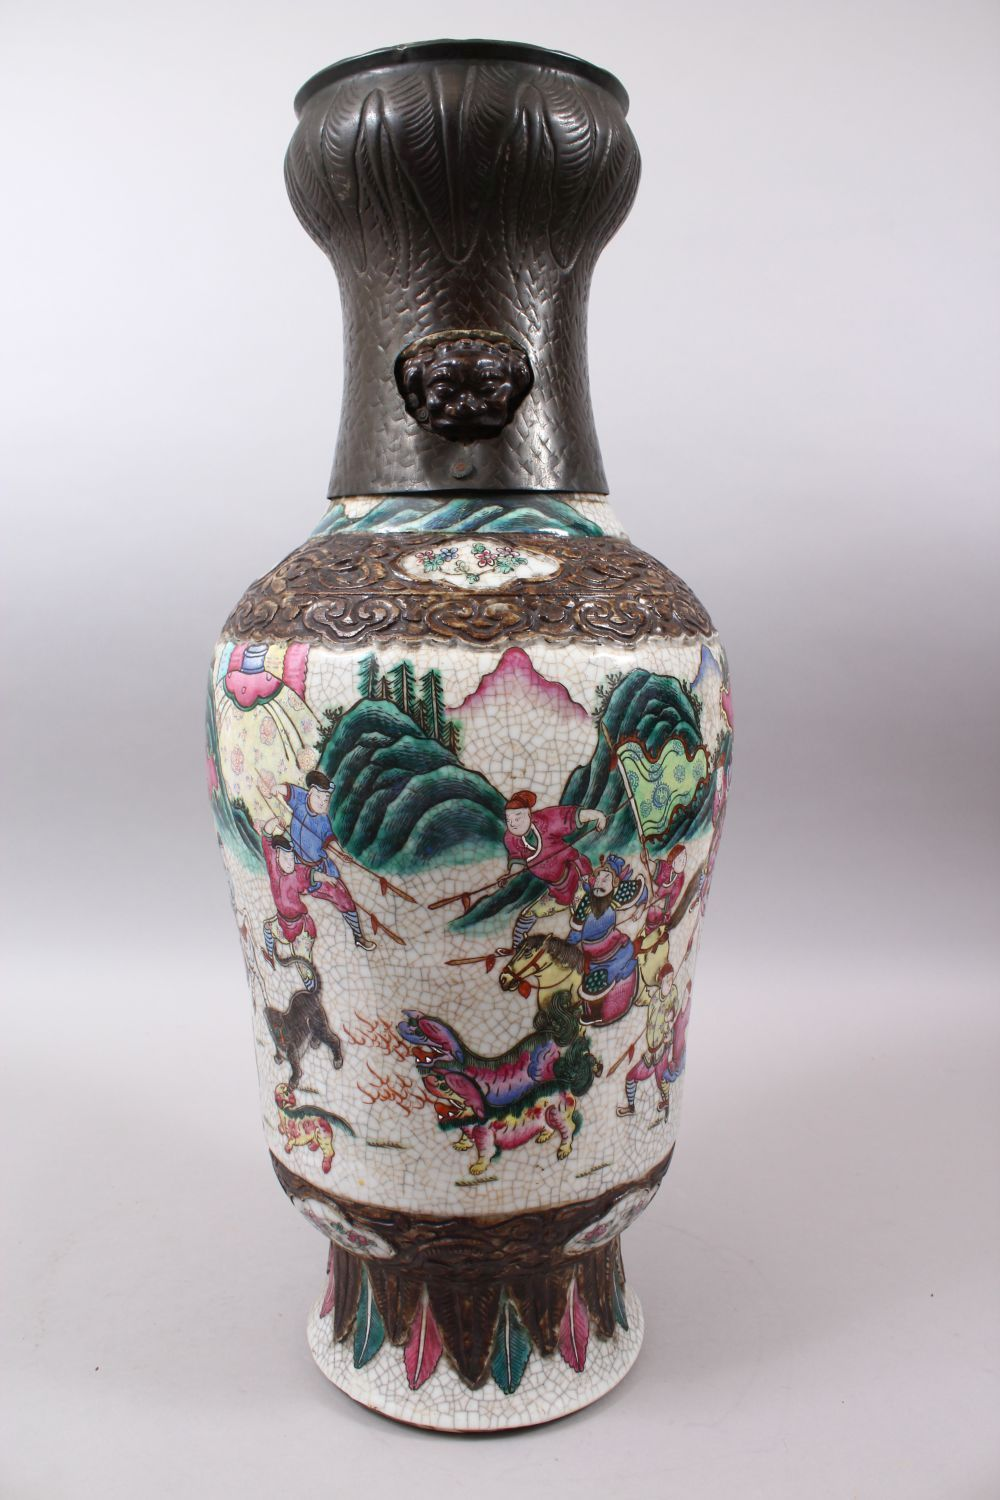 A 19TH CENTURY CHINESE FAMILLE ROSE CRACKLE GLAZED PORCELAIN VASE, painted with a battle scene, - Image 4 of 8